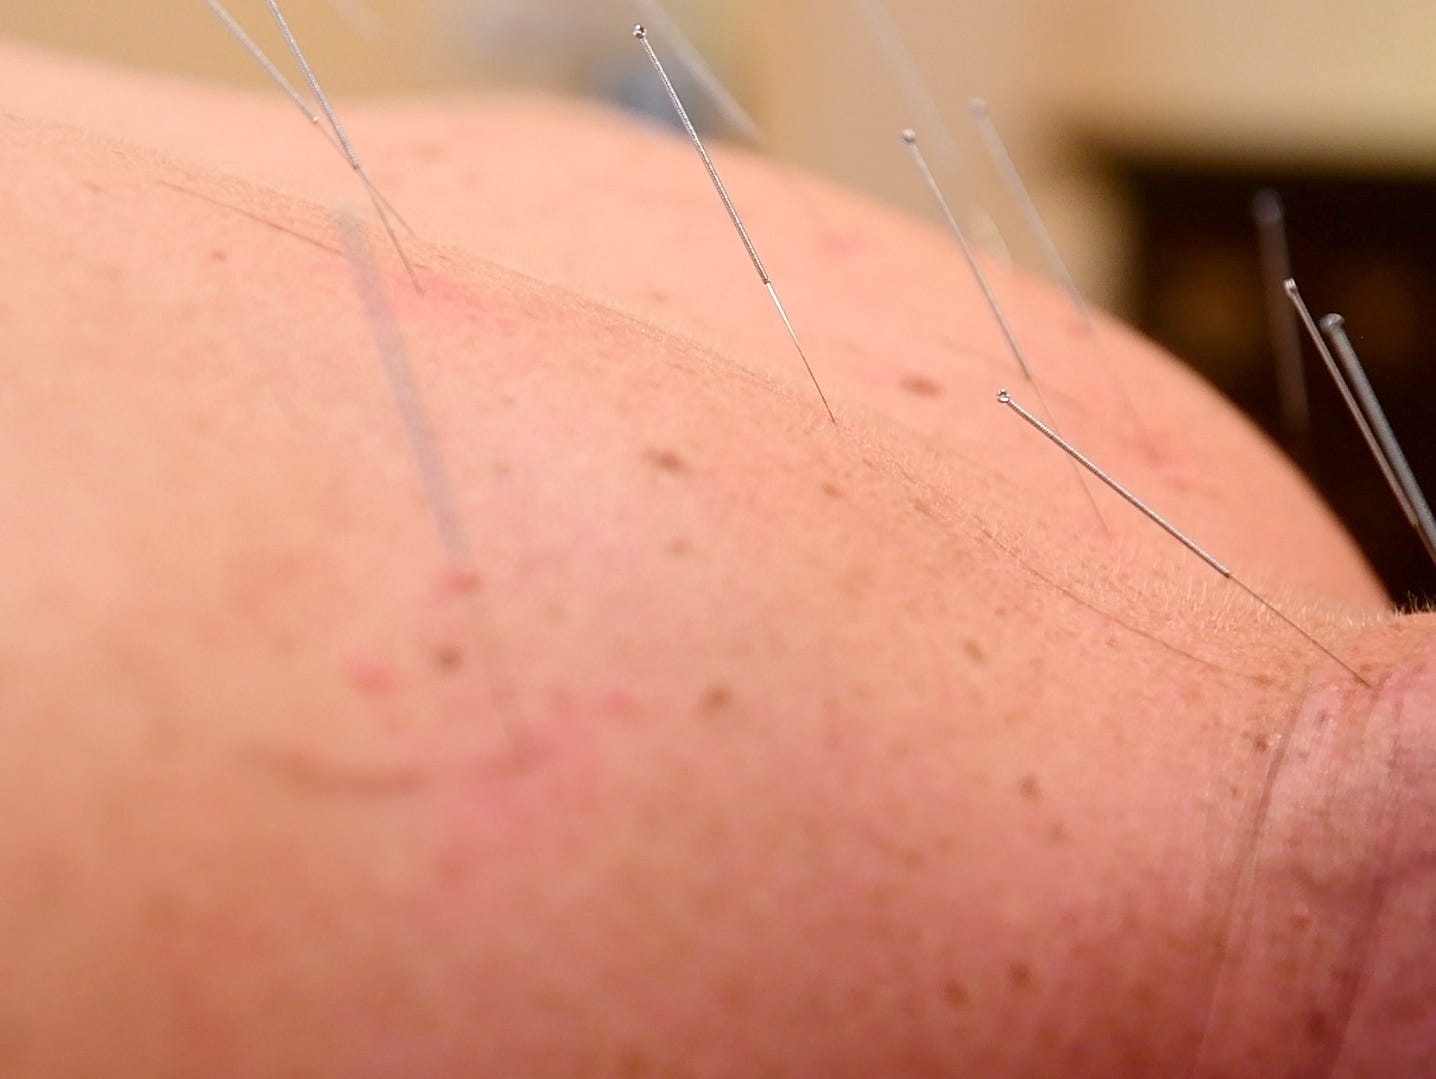 Acupuncture needles stick out of reporter John Buffone's back while trying acupuncture at Acupuncture of York, Wednesday, Aug. 29, 2018.